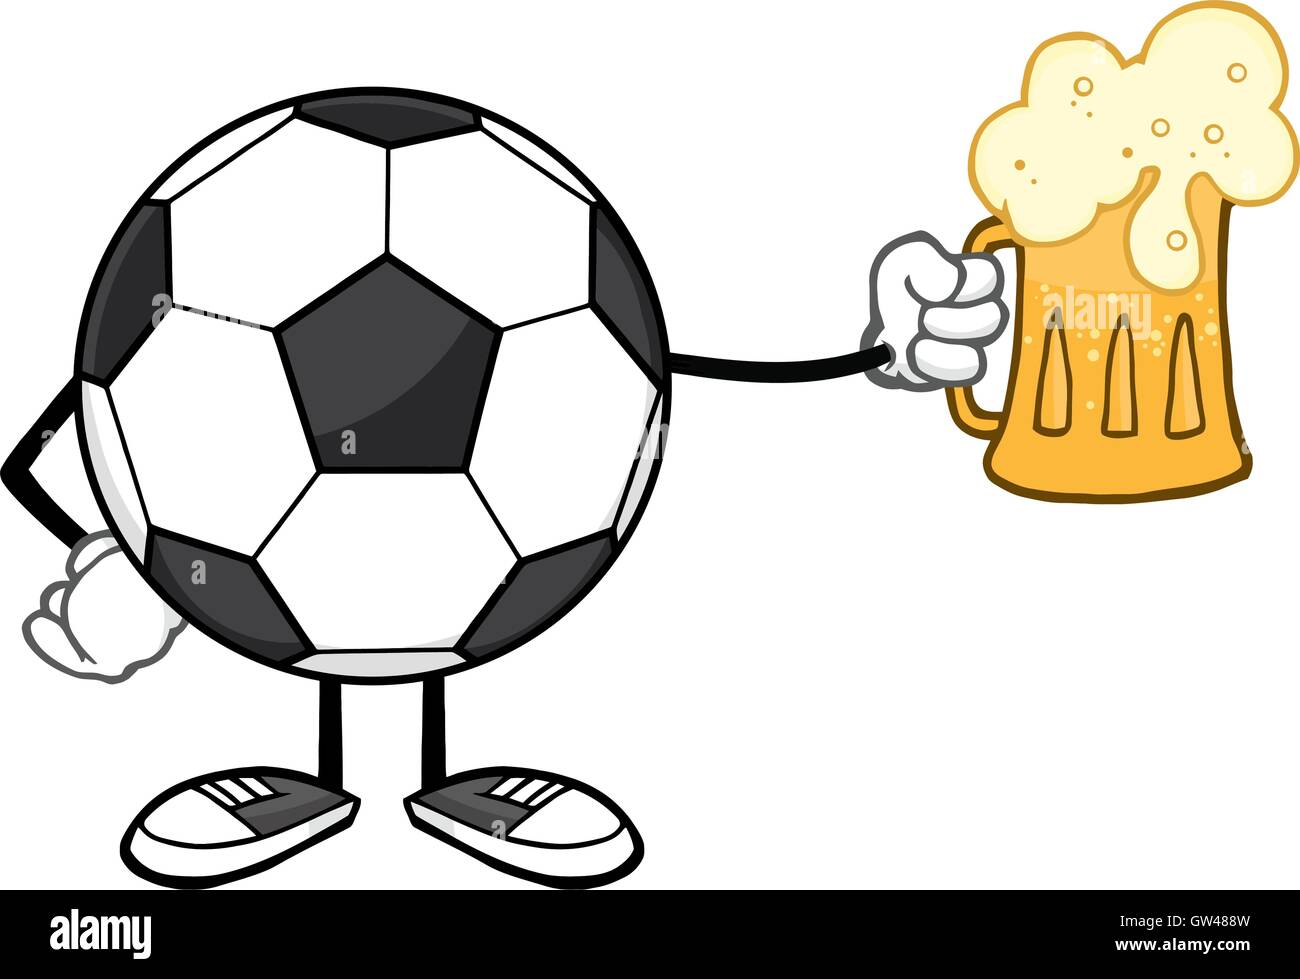 Cartoon Characters W Glasses : Soccer ball cartoon mascot character holding a beer glass